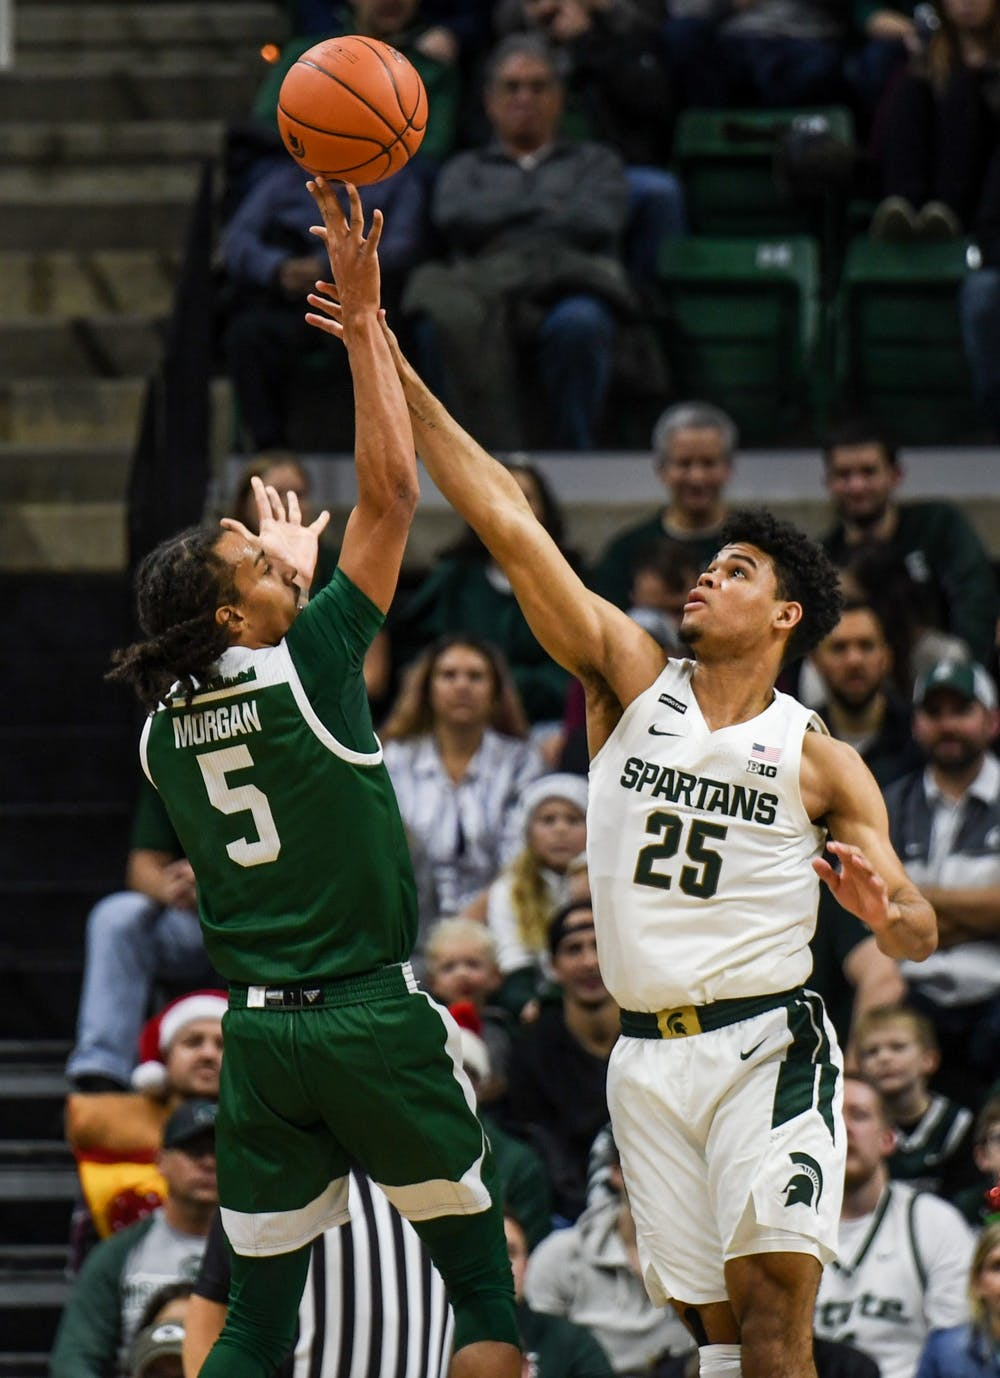 <p>Then-freshman forward Malik Hall (25) contests a shot during the game against Eastern Michigan on Dec. 21, 2019, at the Breslin Center. The Spartans defeated the Eagles, 101-48.</p>